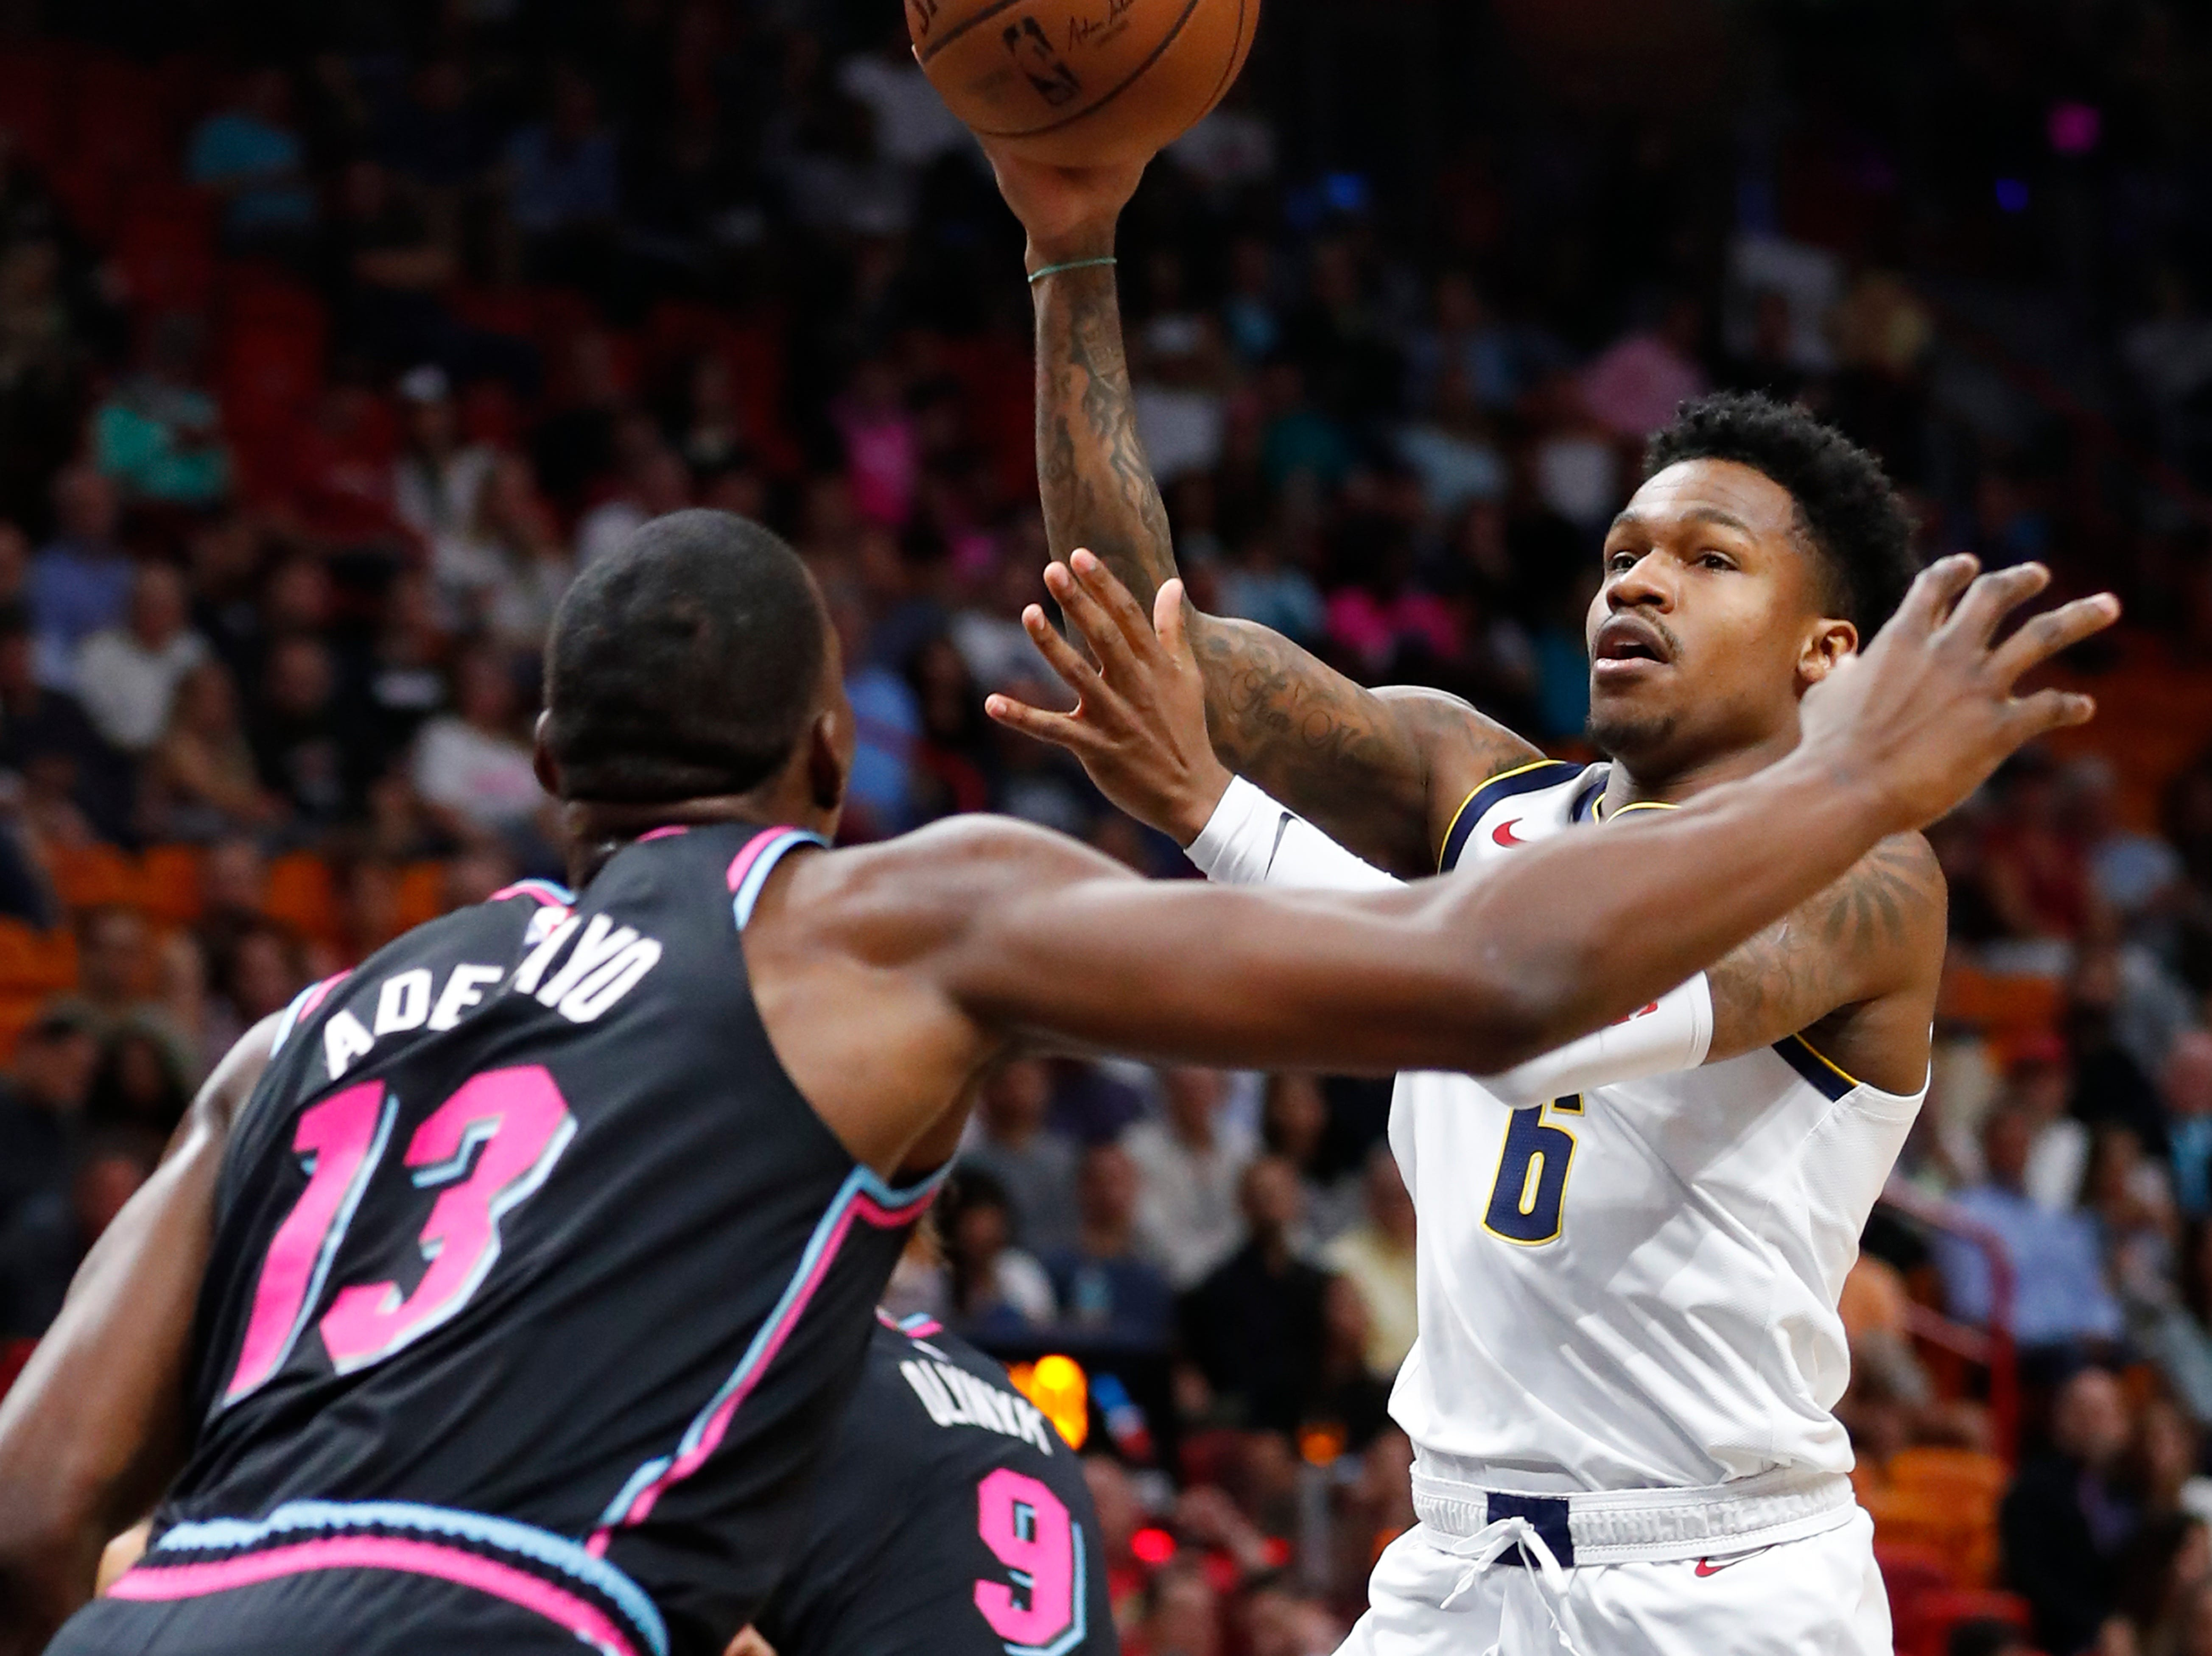 Denver Nuggets guard Brandon Goodwin (6) makes a pass against Miami Heat center Bam Adebayo (13) during the first half of an NBA basketball game against the Miami Heat, Tuesday, Jan. 8, 2019, in Miami. (AP Photo/Wilfredo Lee)